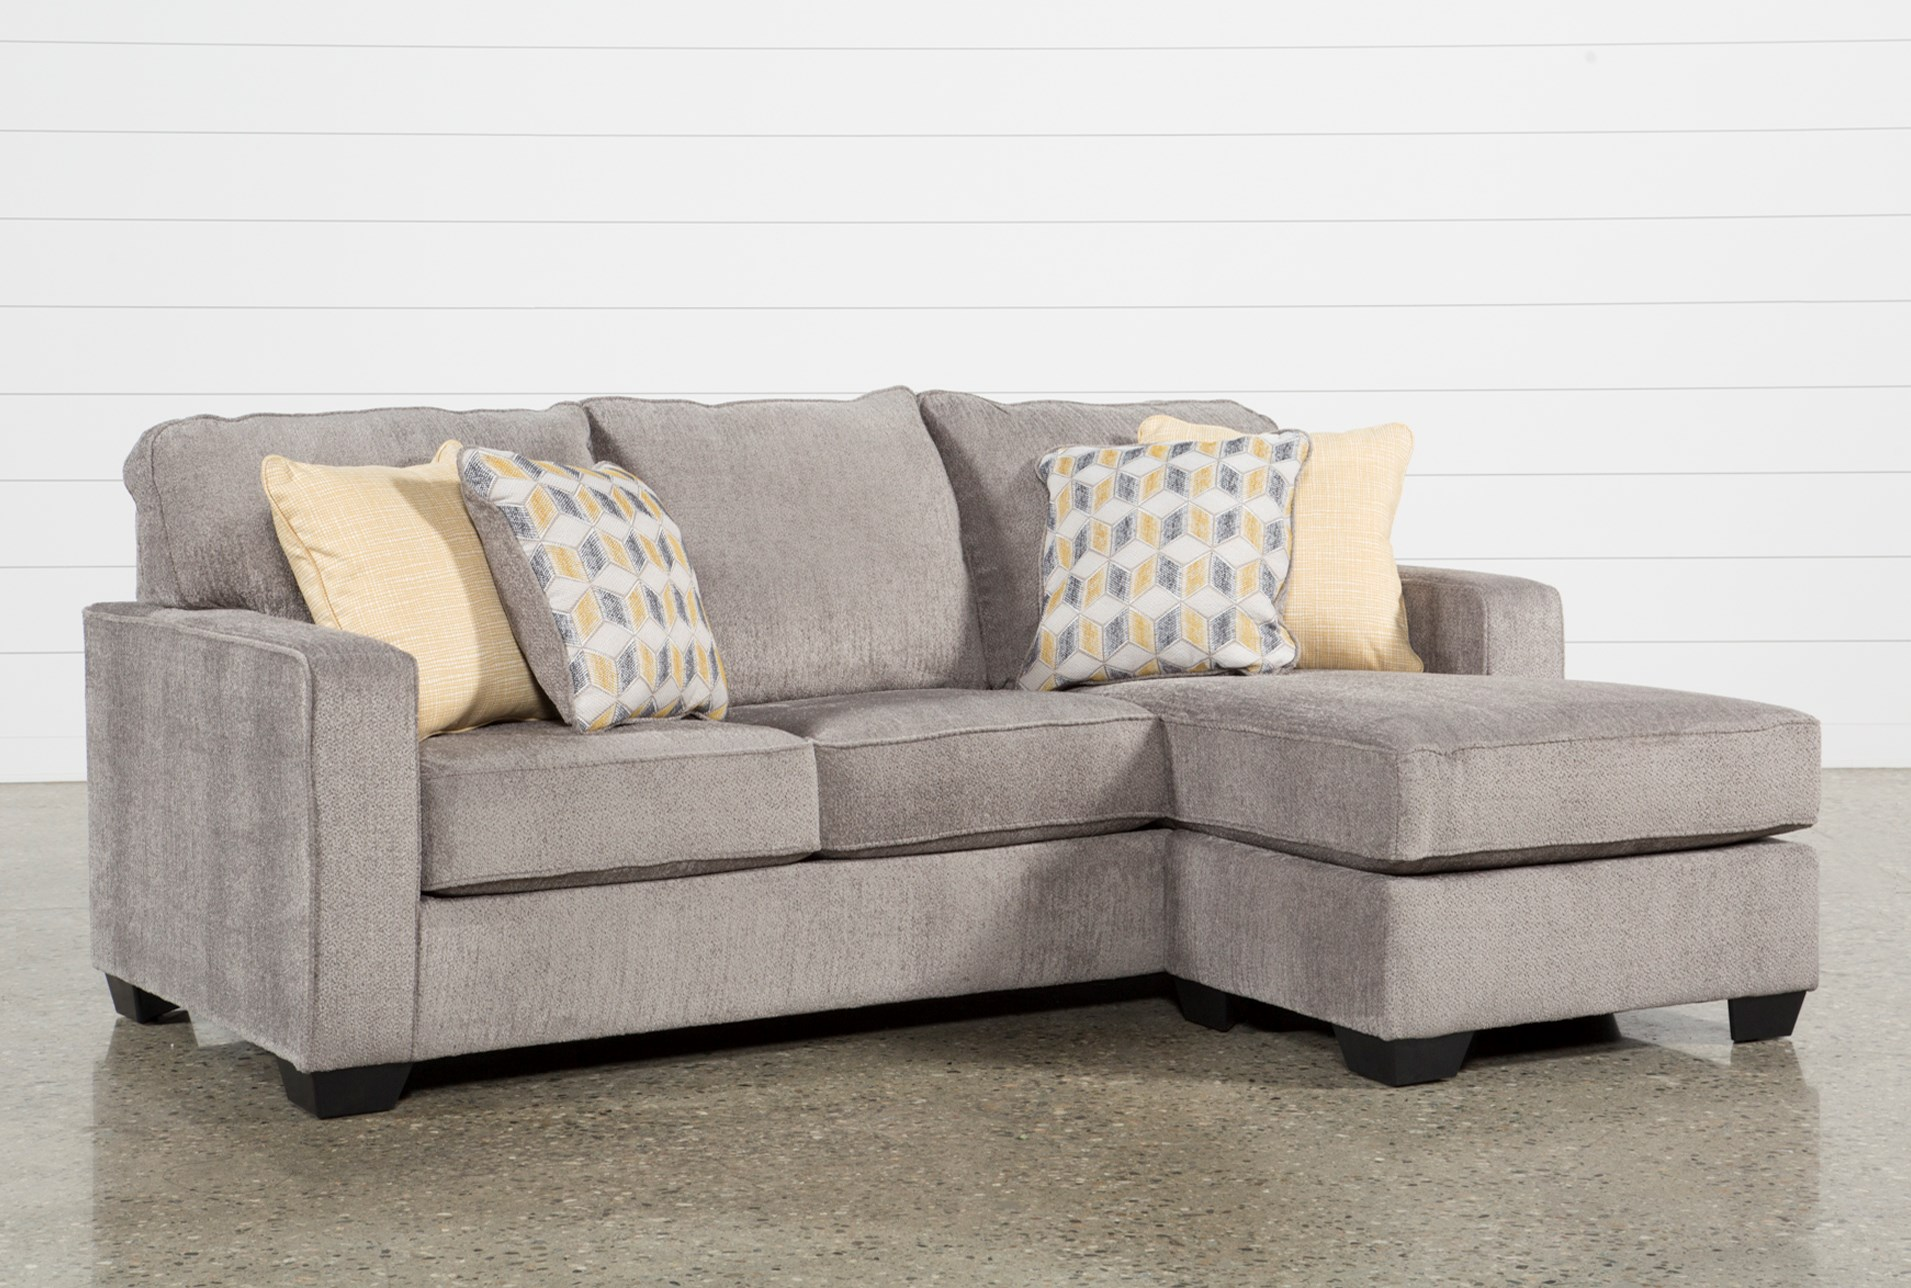 contemporary with sofa swagger end chaise franco corner fabric this products the grey sofas product share designer